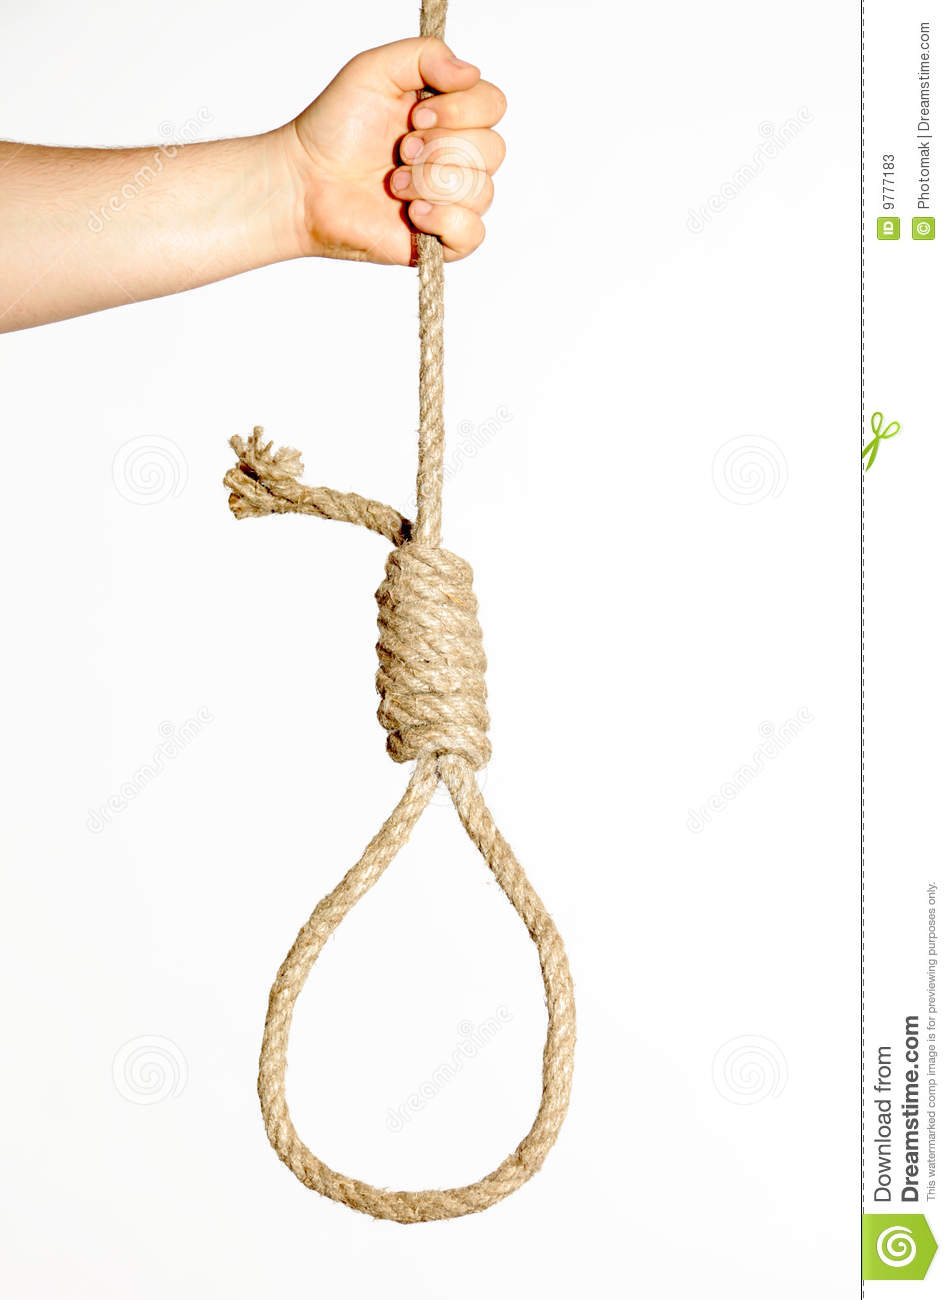 Noose In Hand On White Background Stock Image Image Of Reef Hitch 9777183